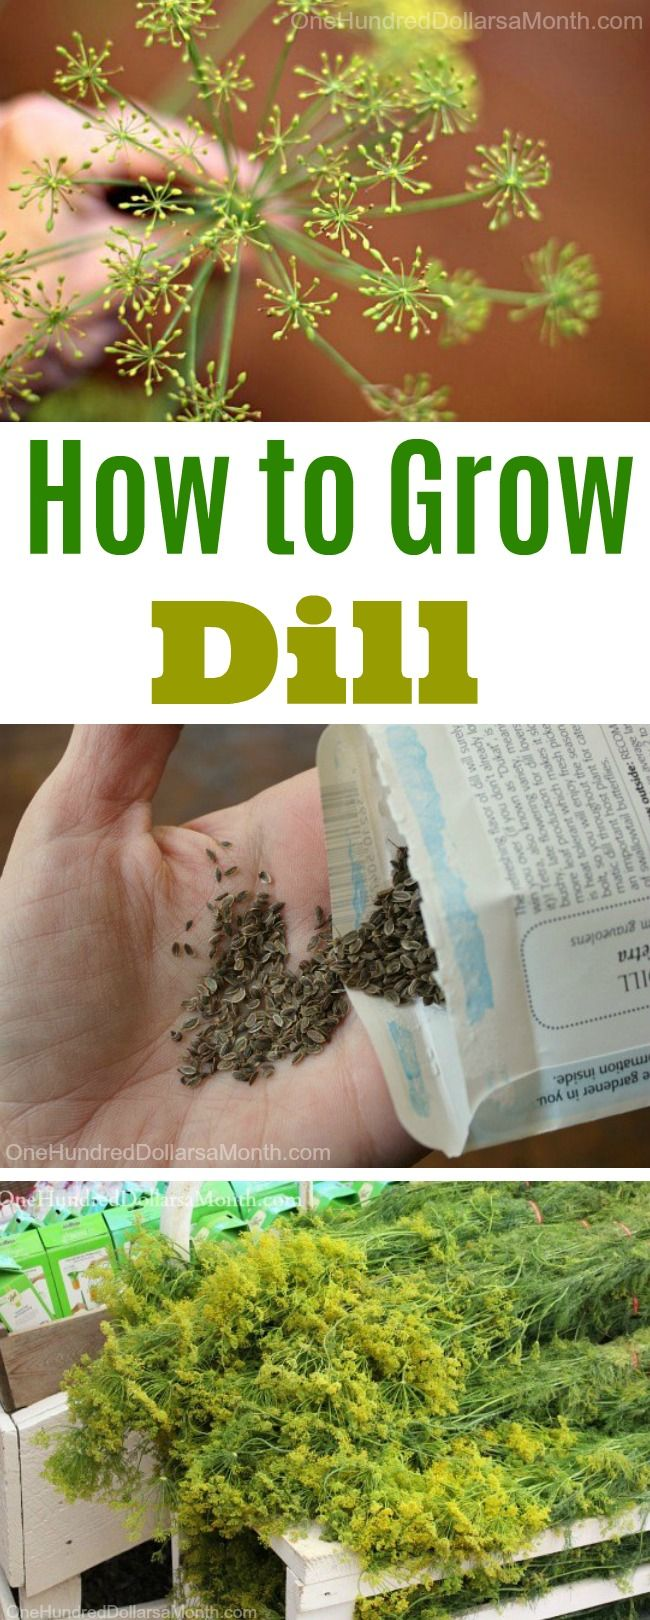 How to Grow Dill, Growing Dill, Seed Starting Tips, Planting Dill in Garden, Herb Garden Ideas